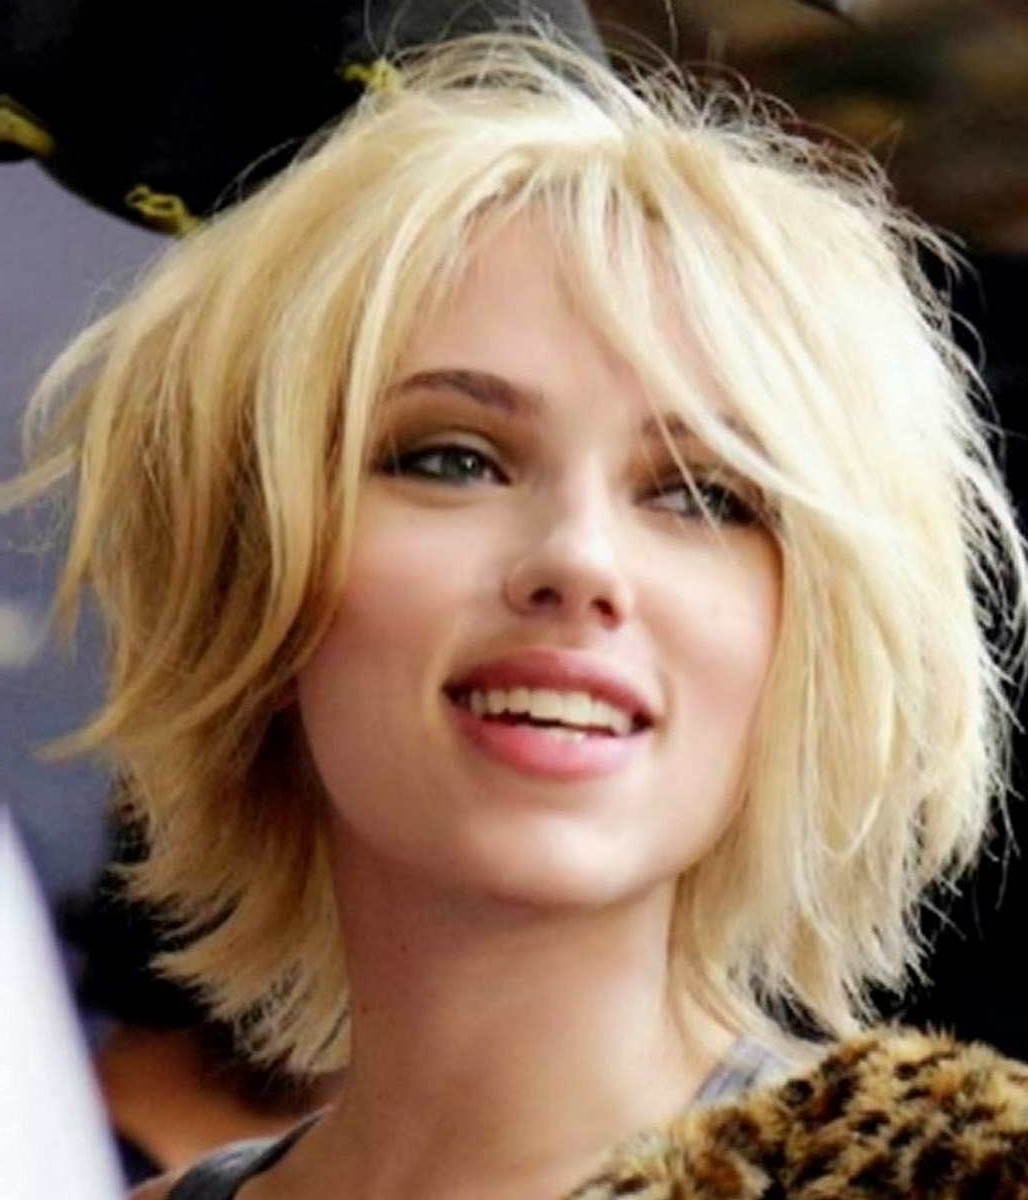 Short Shaggy Hairstyles For Thick Hair: Popular Short Shaggy Pertaining To Most Popular Cool Shaggy Hairstyles (View 13 of 15)